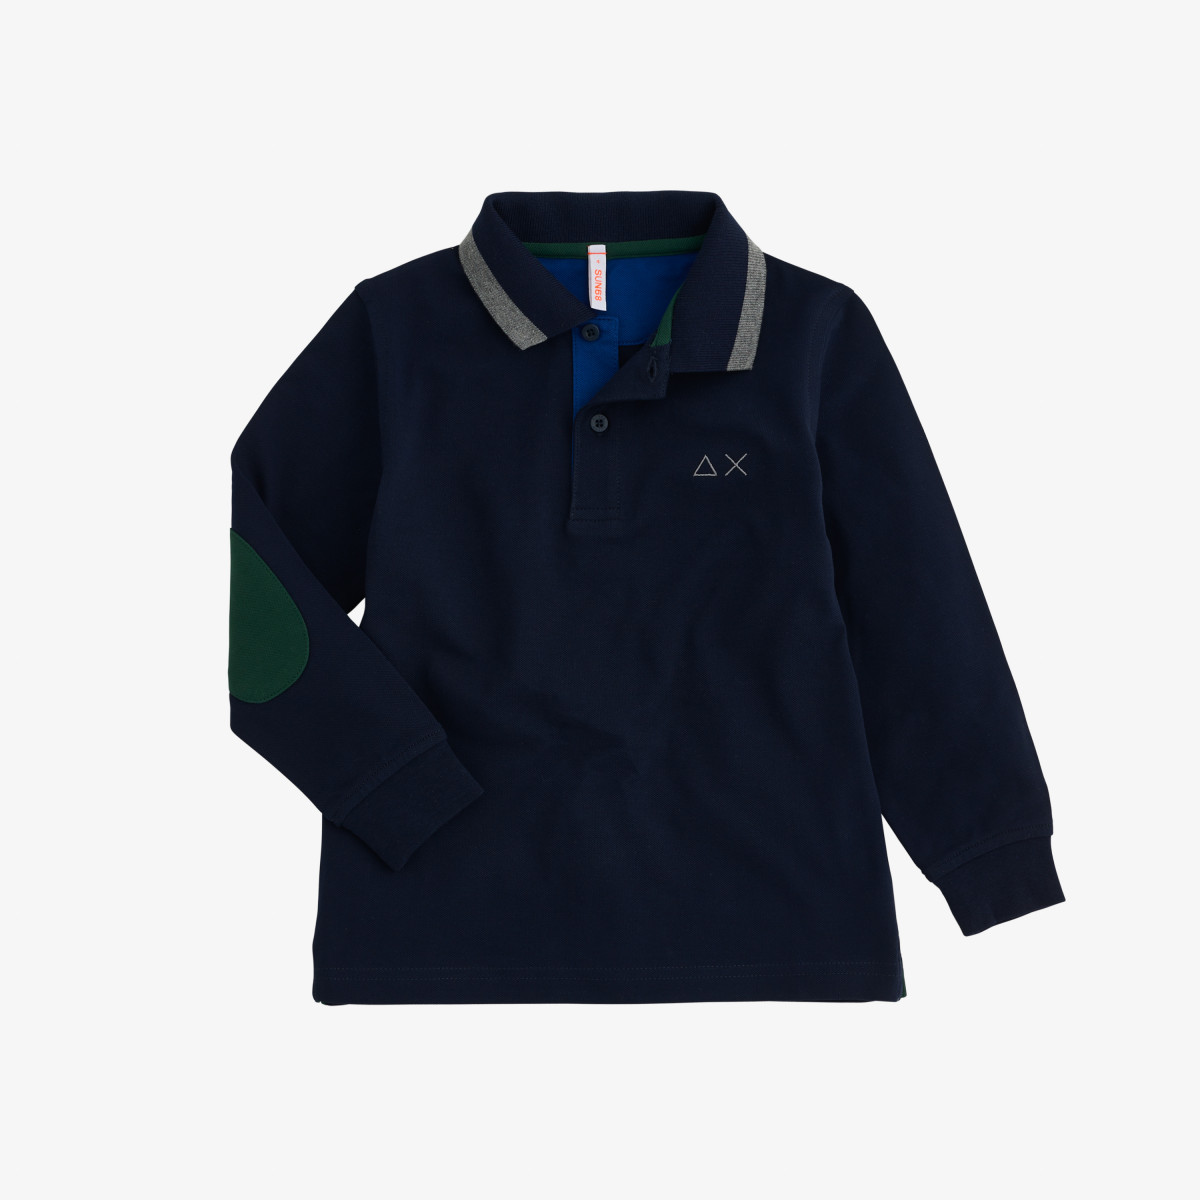 BOY'S POLO BIG STRIPES L/S NAVY BLUE